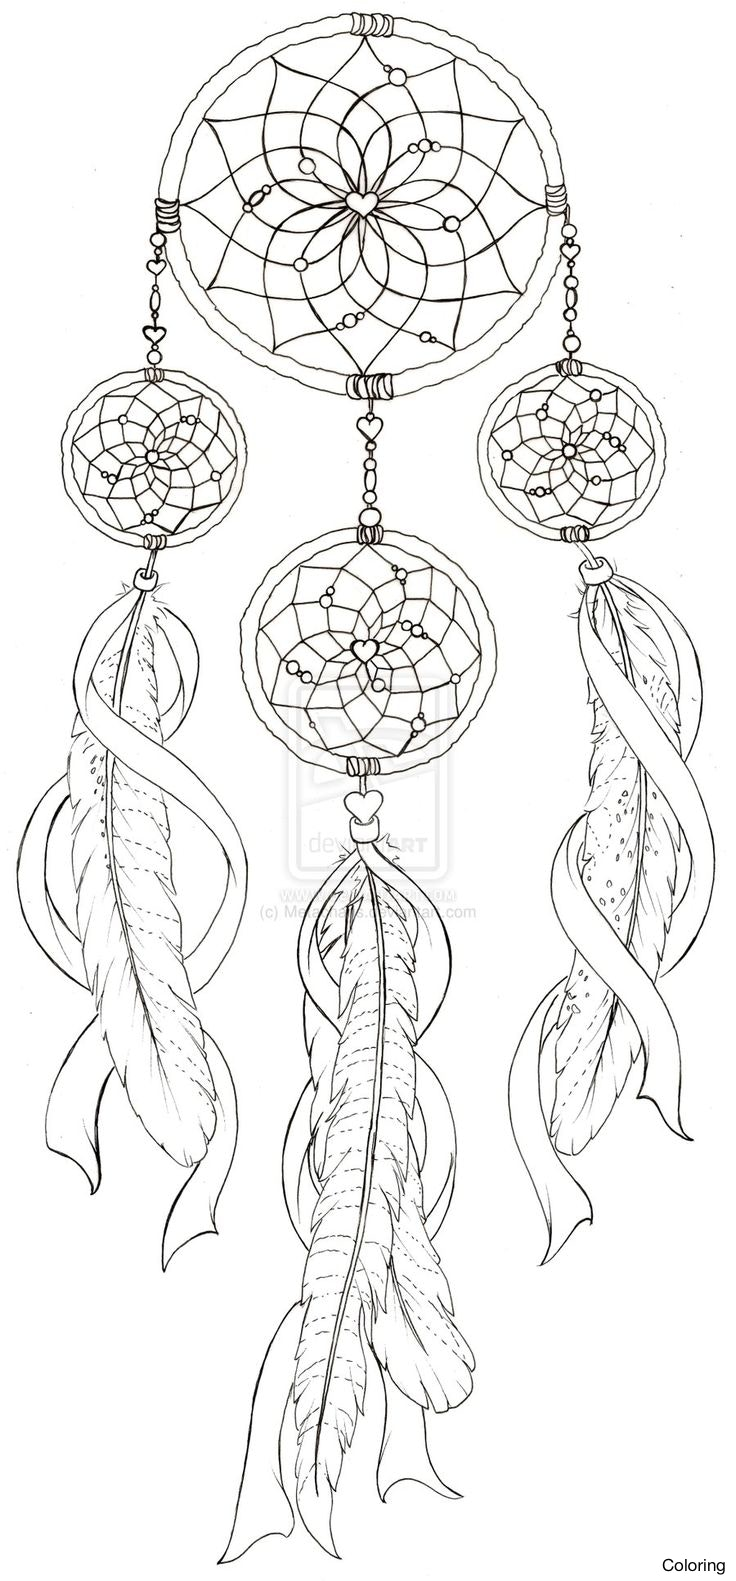 736x1581 Dream Catcher Coloring Pages Luxury Dreamcatcher To Print